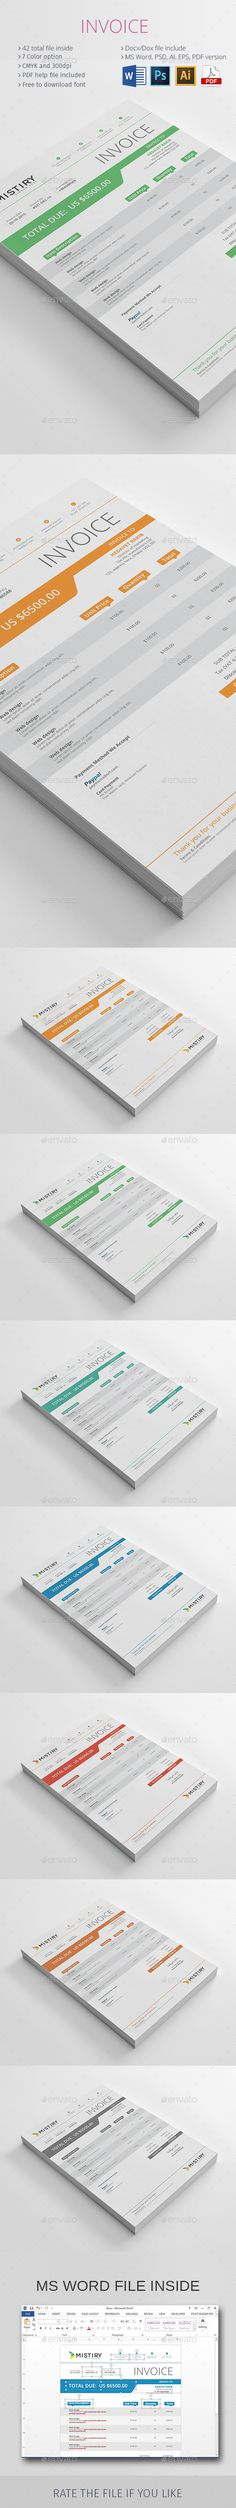 Invoices Template PSD #design Download: http://graphicriver.net/item/invoices/13827600?ref=ksioks